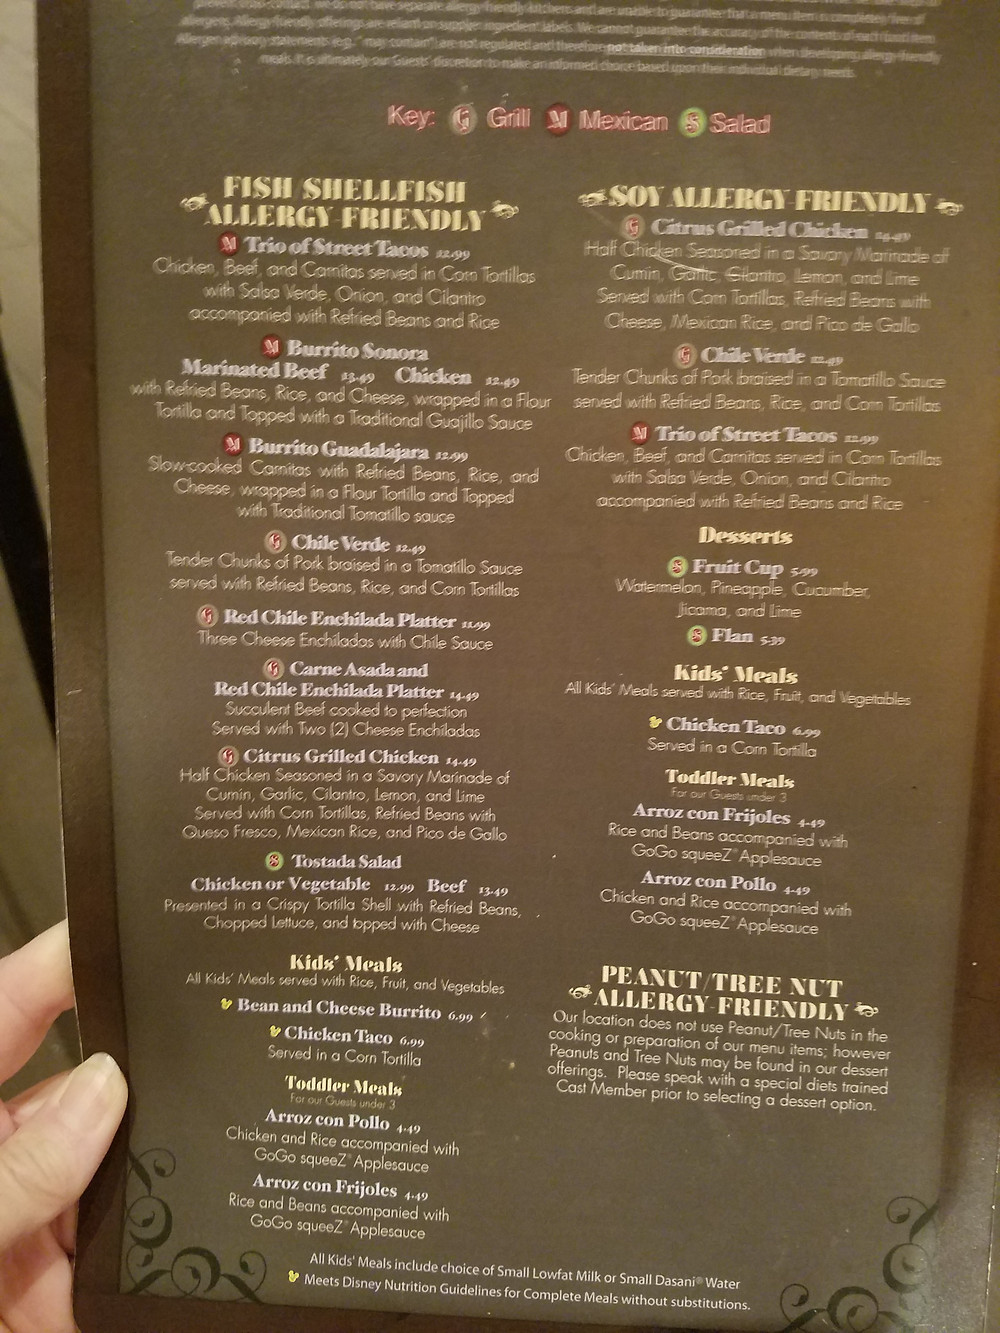 Rancho Del Zocalo Fish & Soy allergy-friendly menu